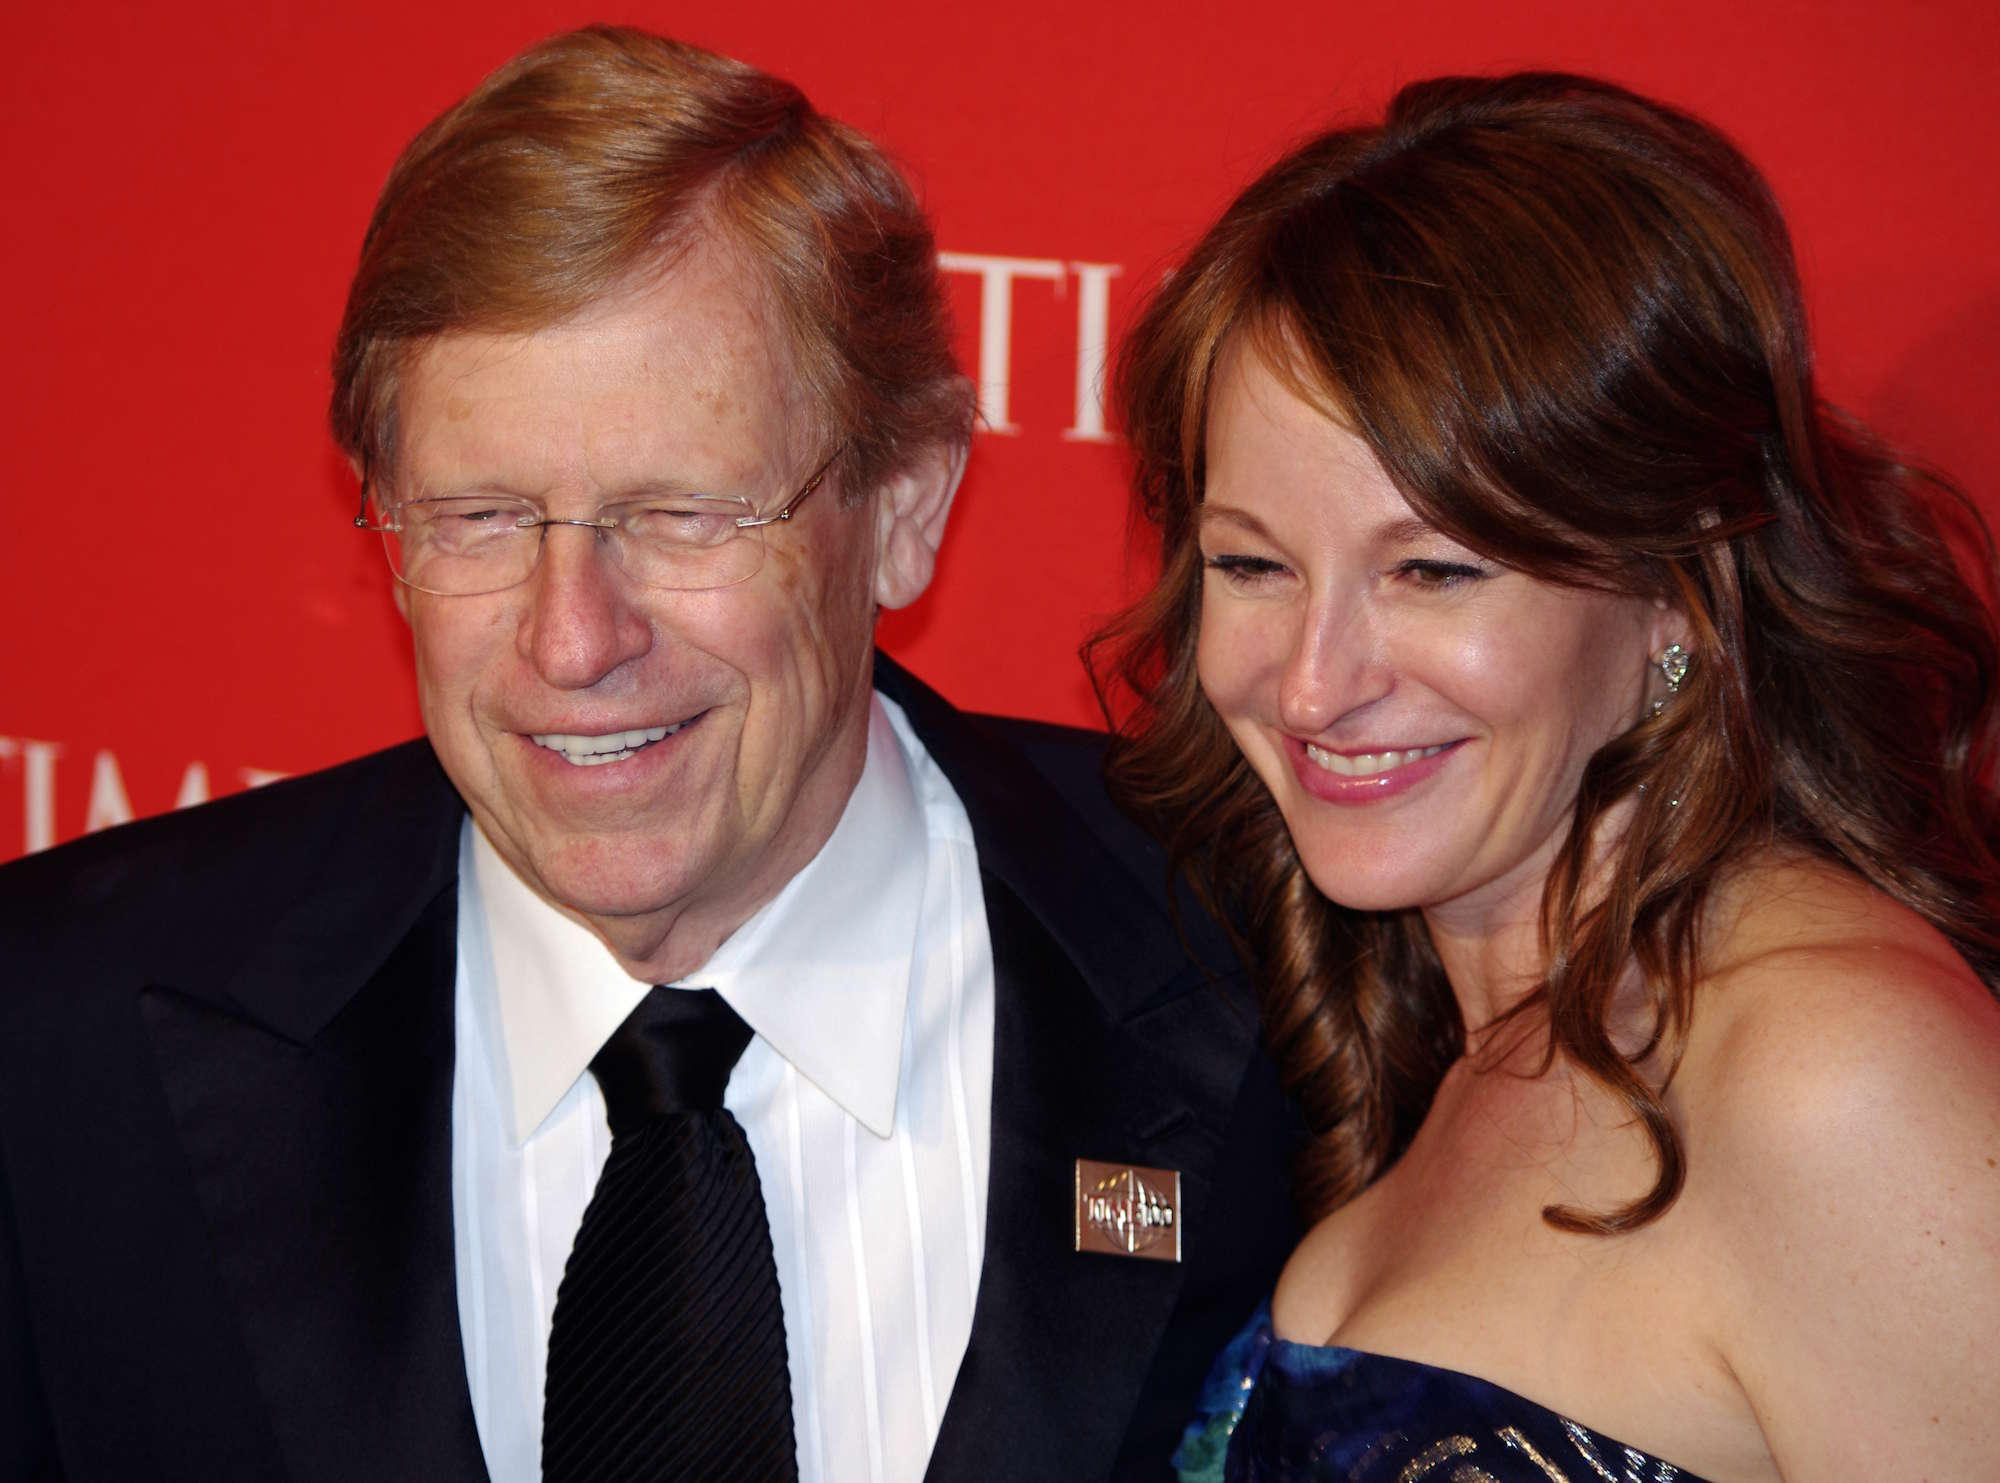 Ted Olson is one of the top legal minds in the country.